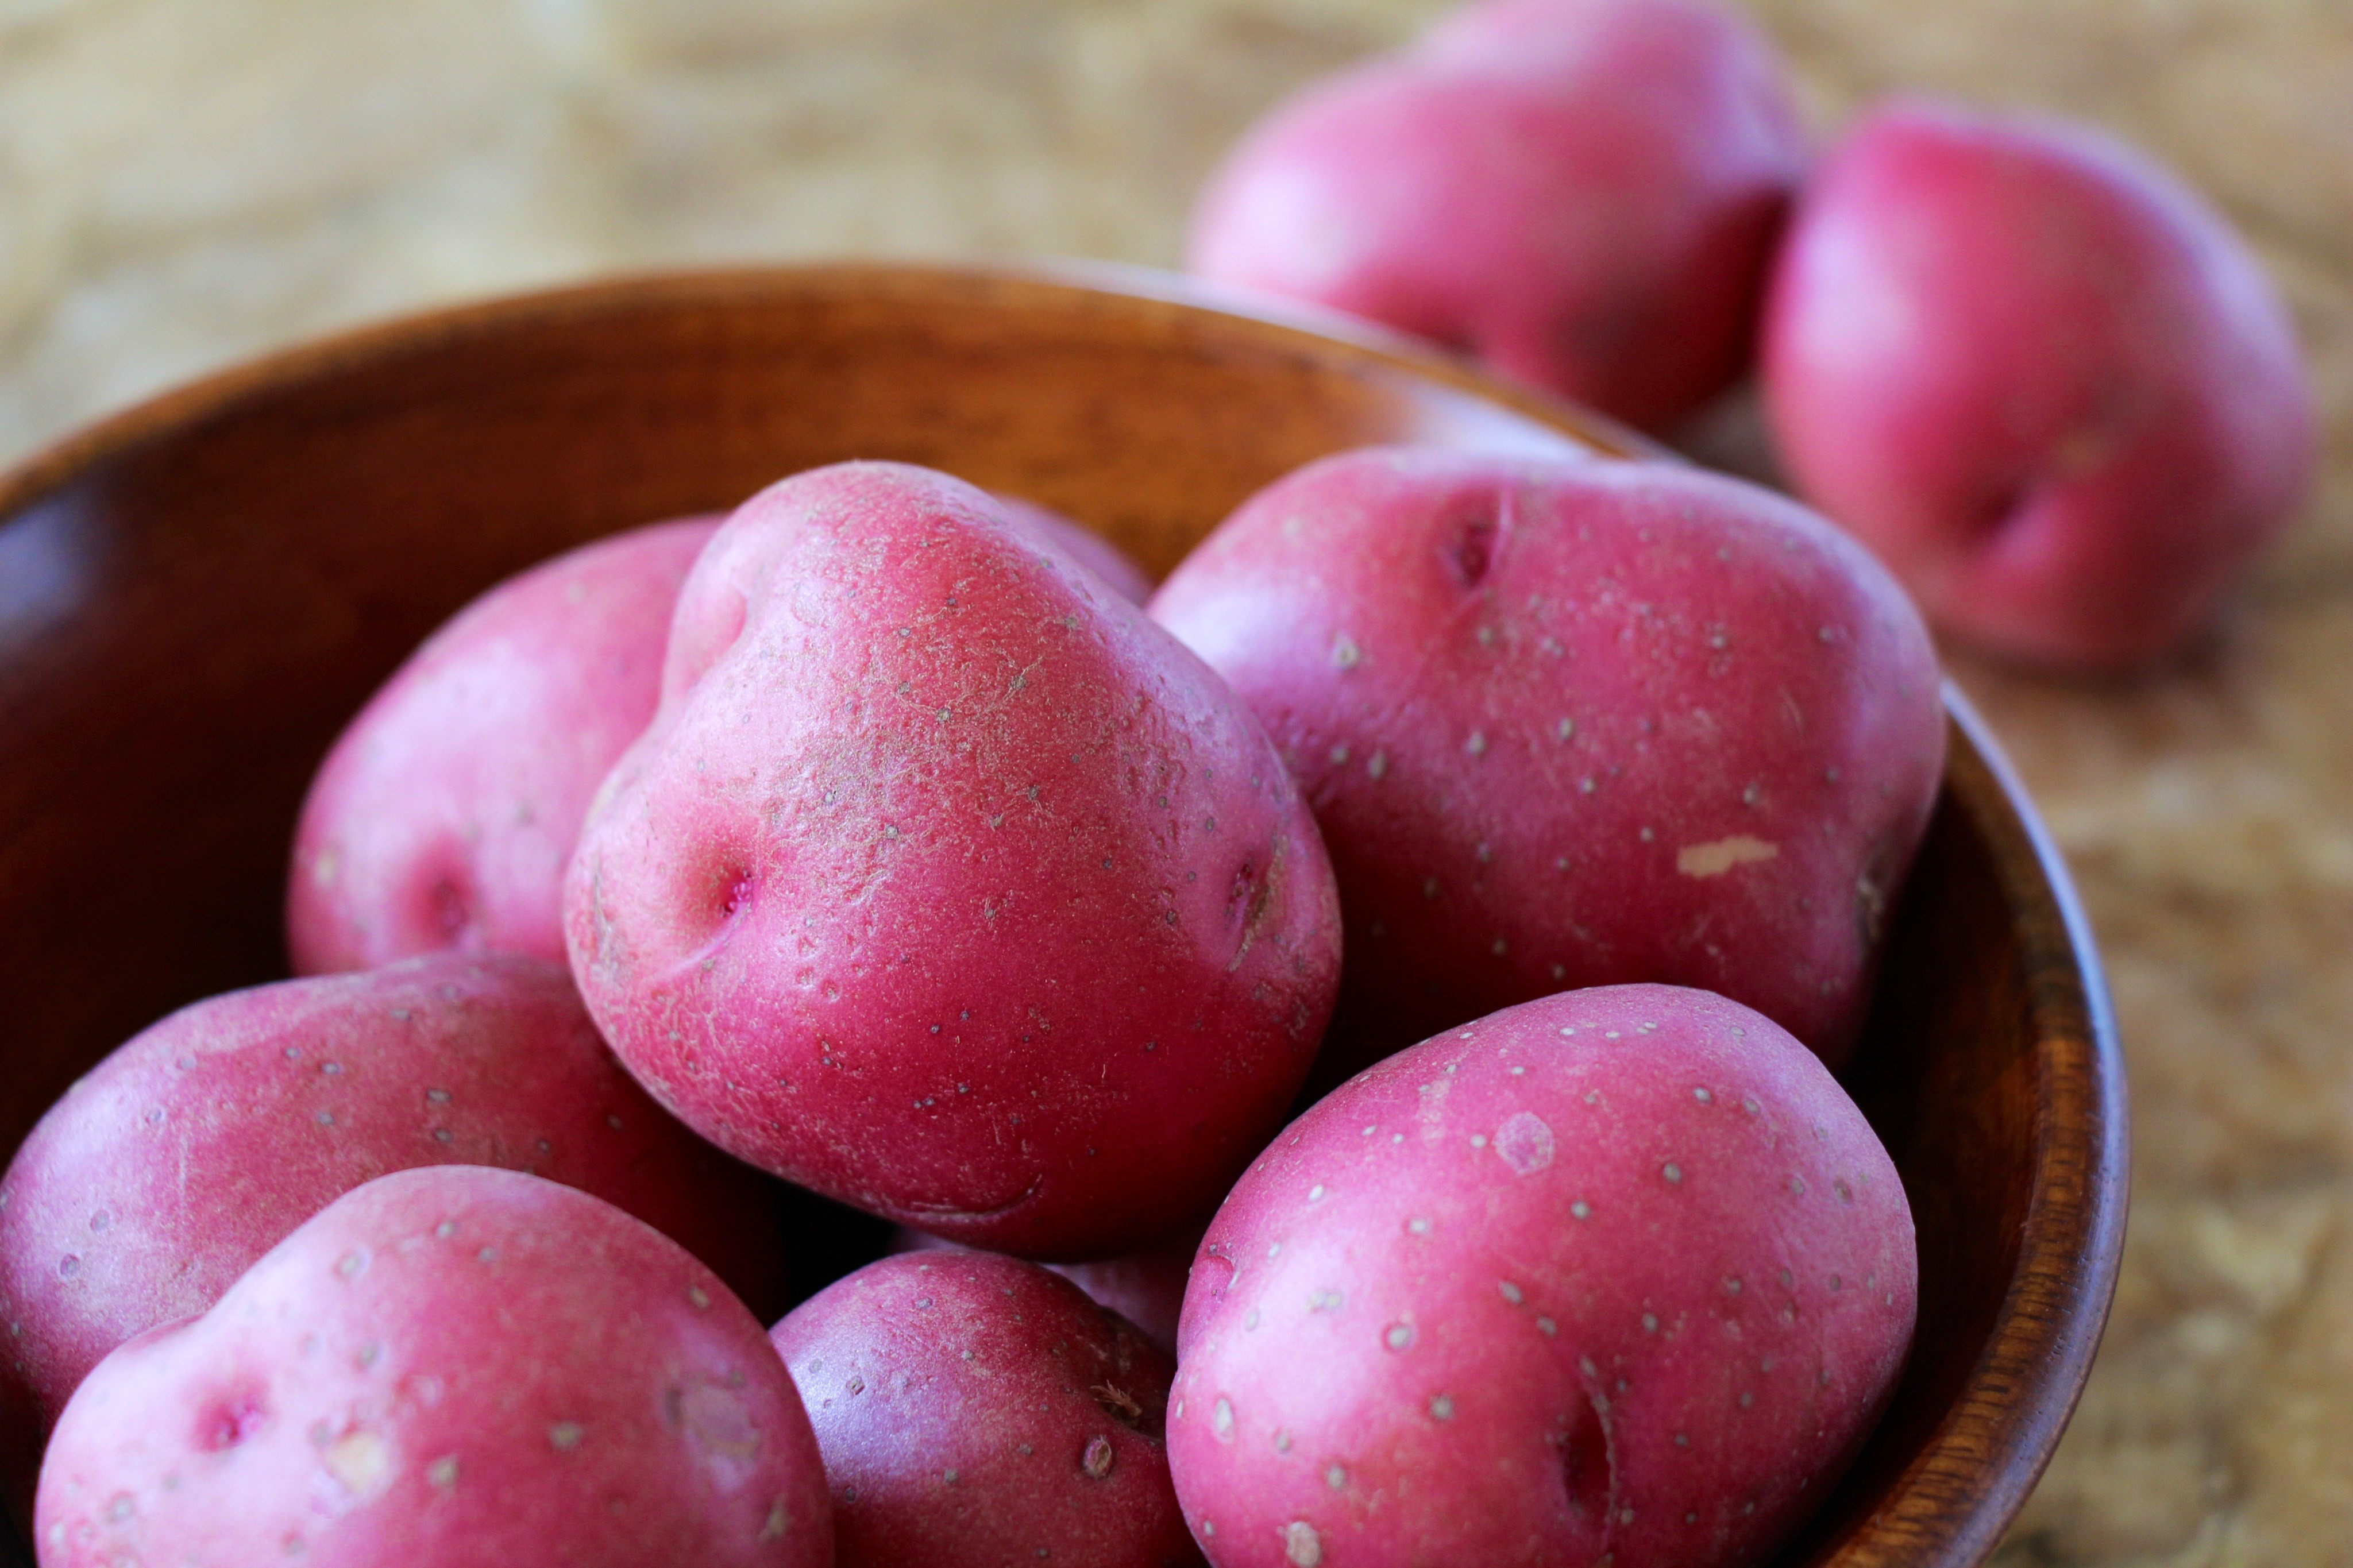 Calories In A Red Potato  The Not So Dirty Half Dozen the 6 Best Foods for